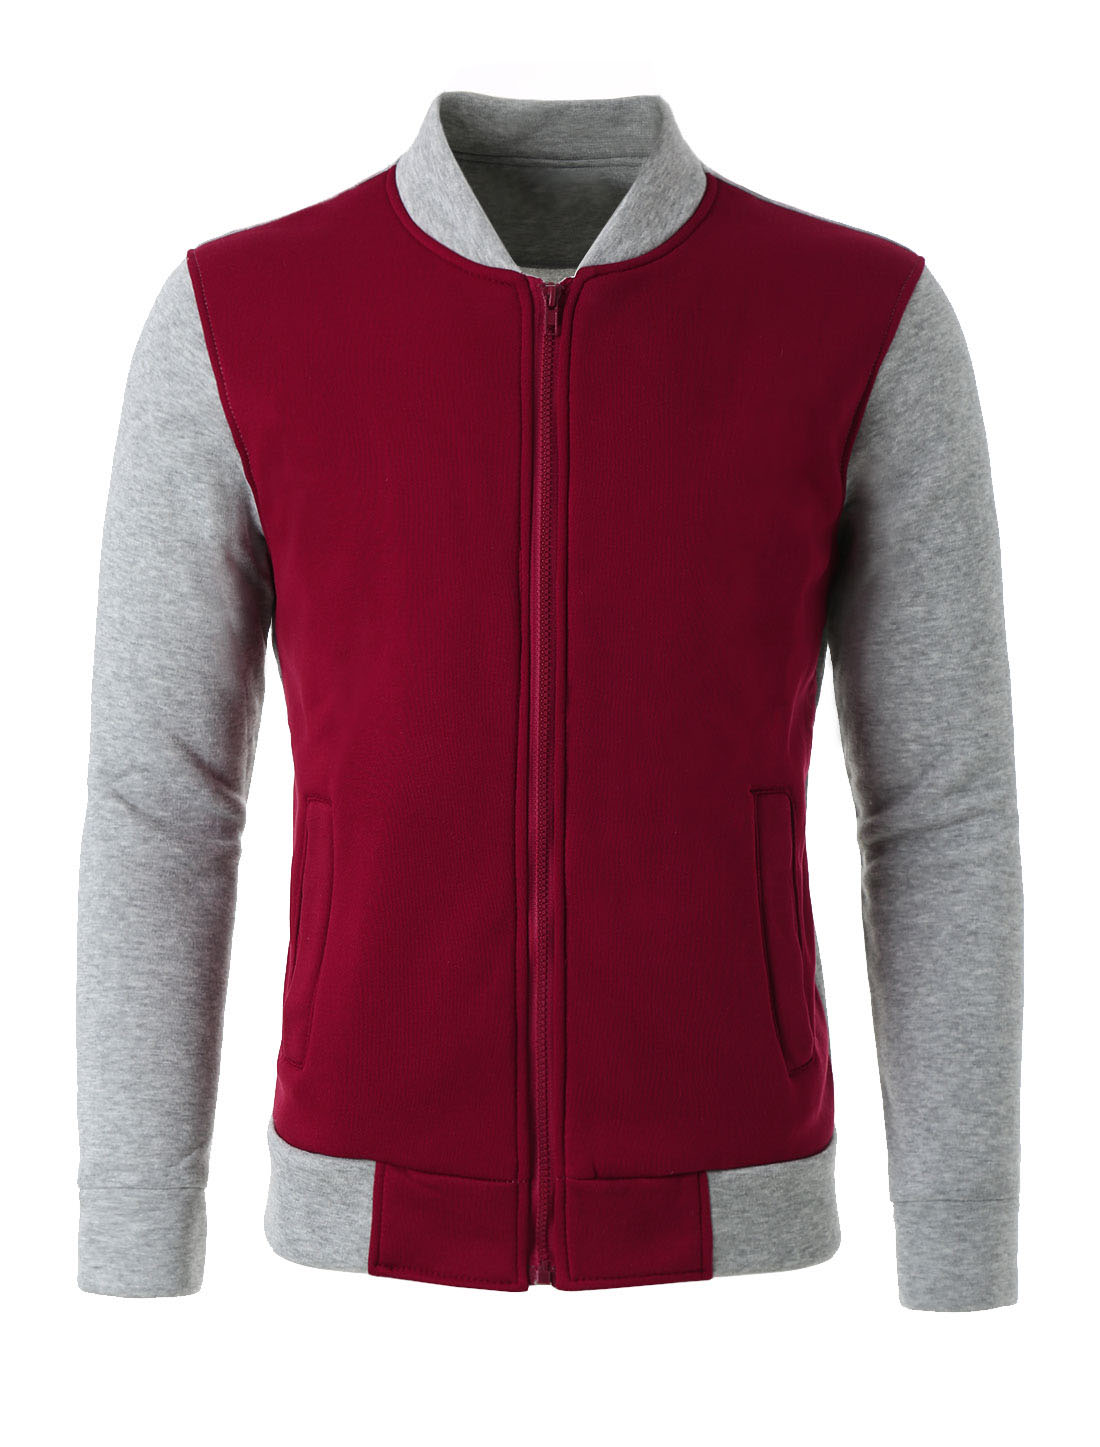 Men Color Block Stand Collar Zipper Front Long Sleeves Cozy Outdoor Varsity Jacket Burgundy Light Gray M